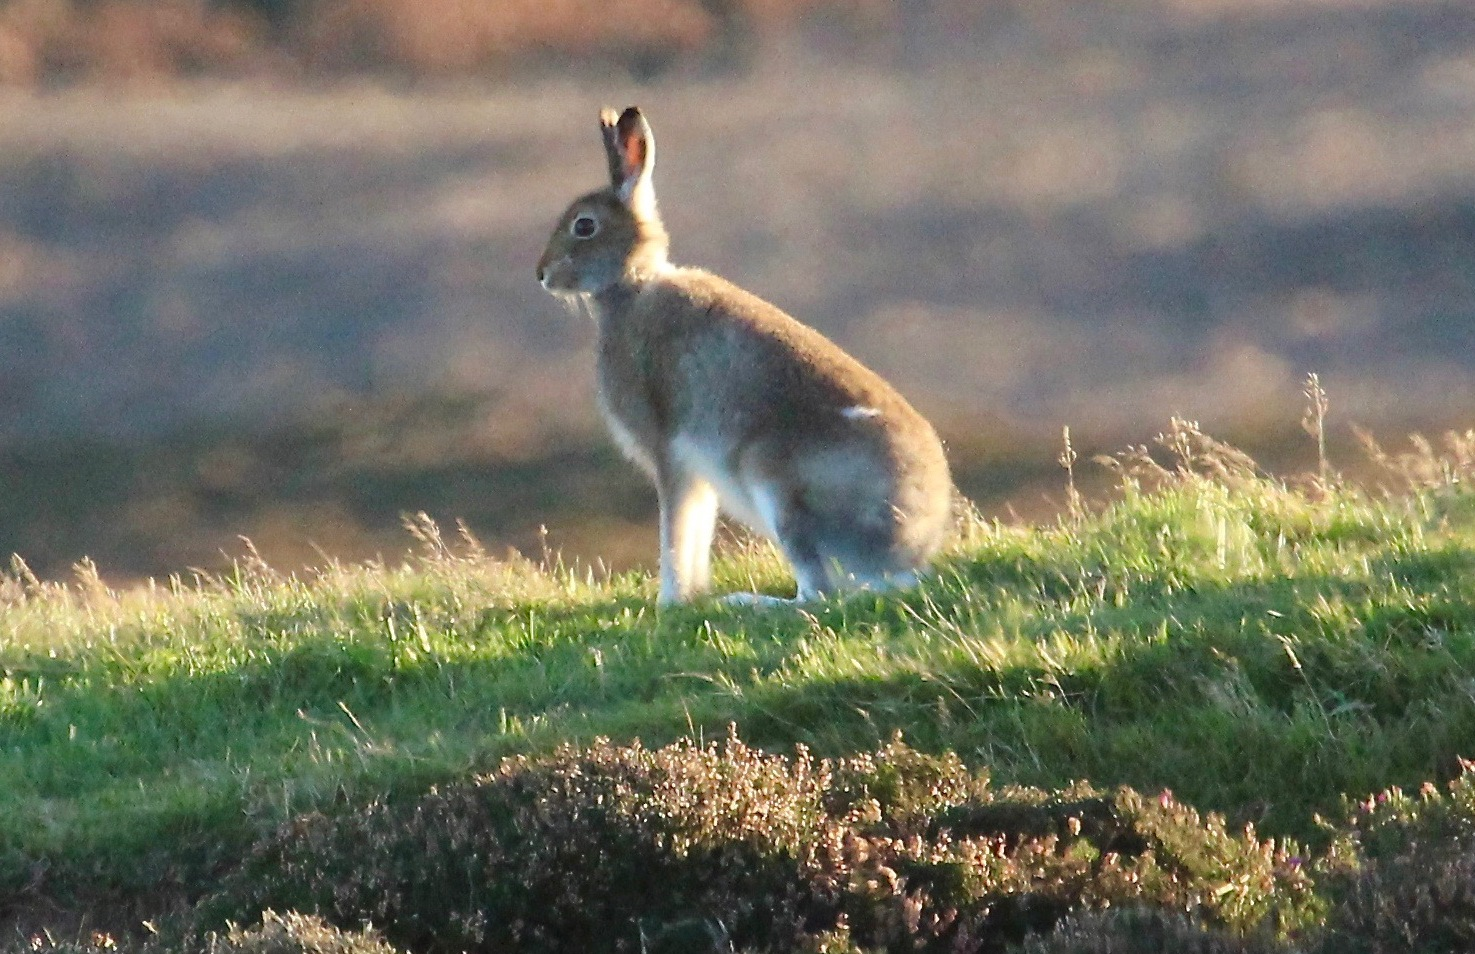 Mountain hares are targeted because they carry a disease which negatively impacts red grouse